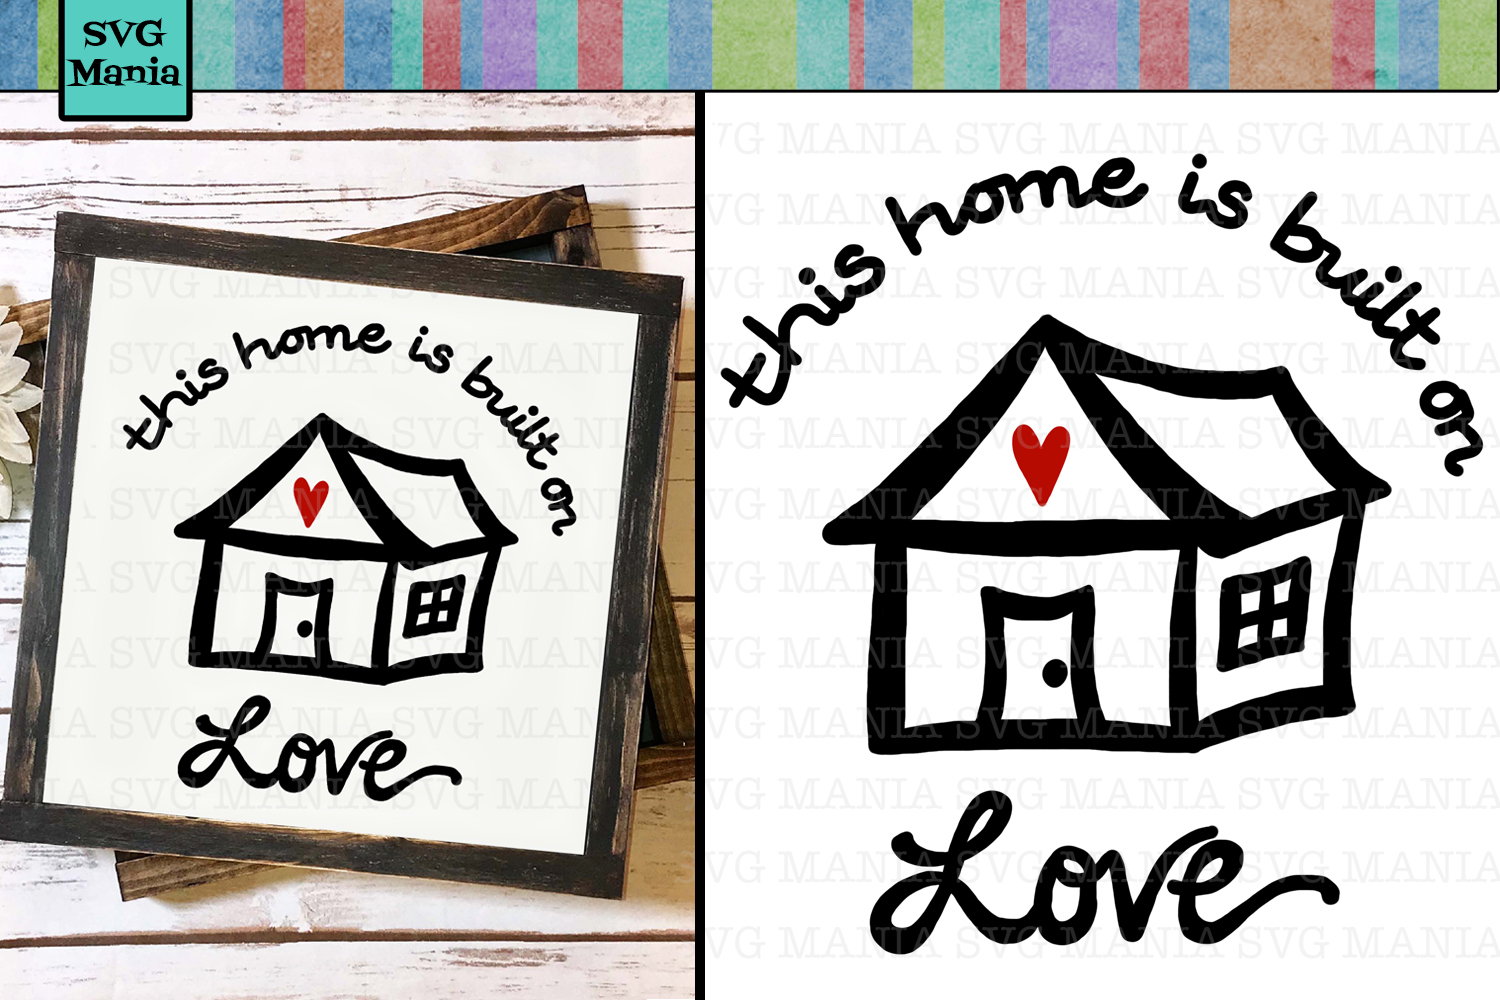 House Quote SVG File, Family Quote SVG, Wood Sign SVG, SVG example image 1